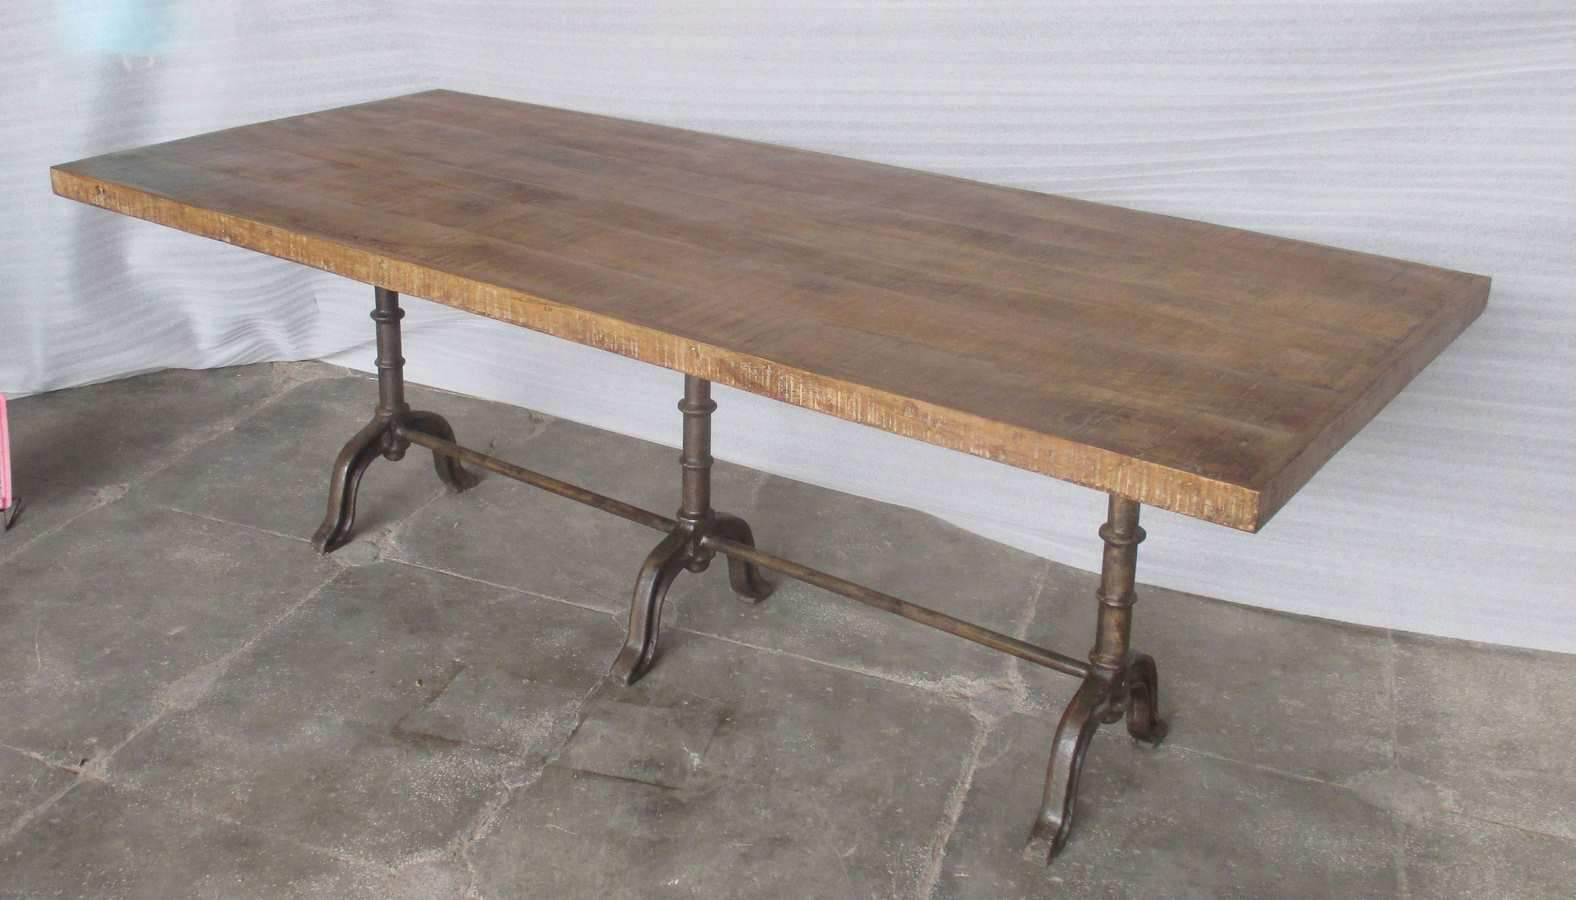 CAST IRON BASE + WOODEN TOP TABLE